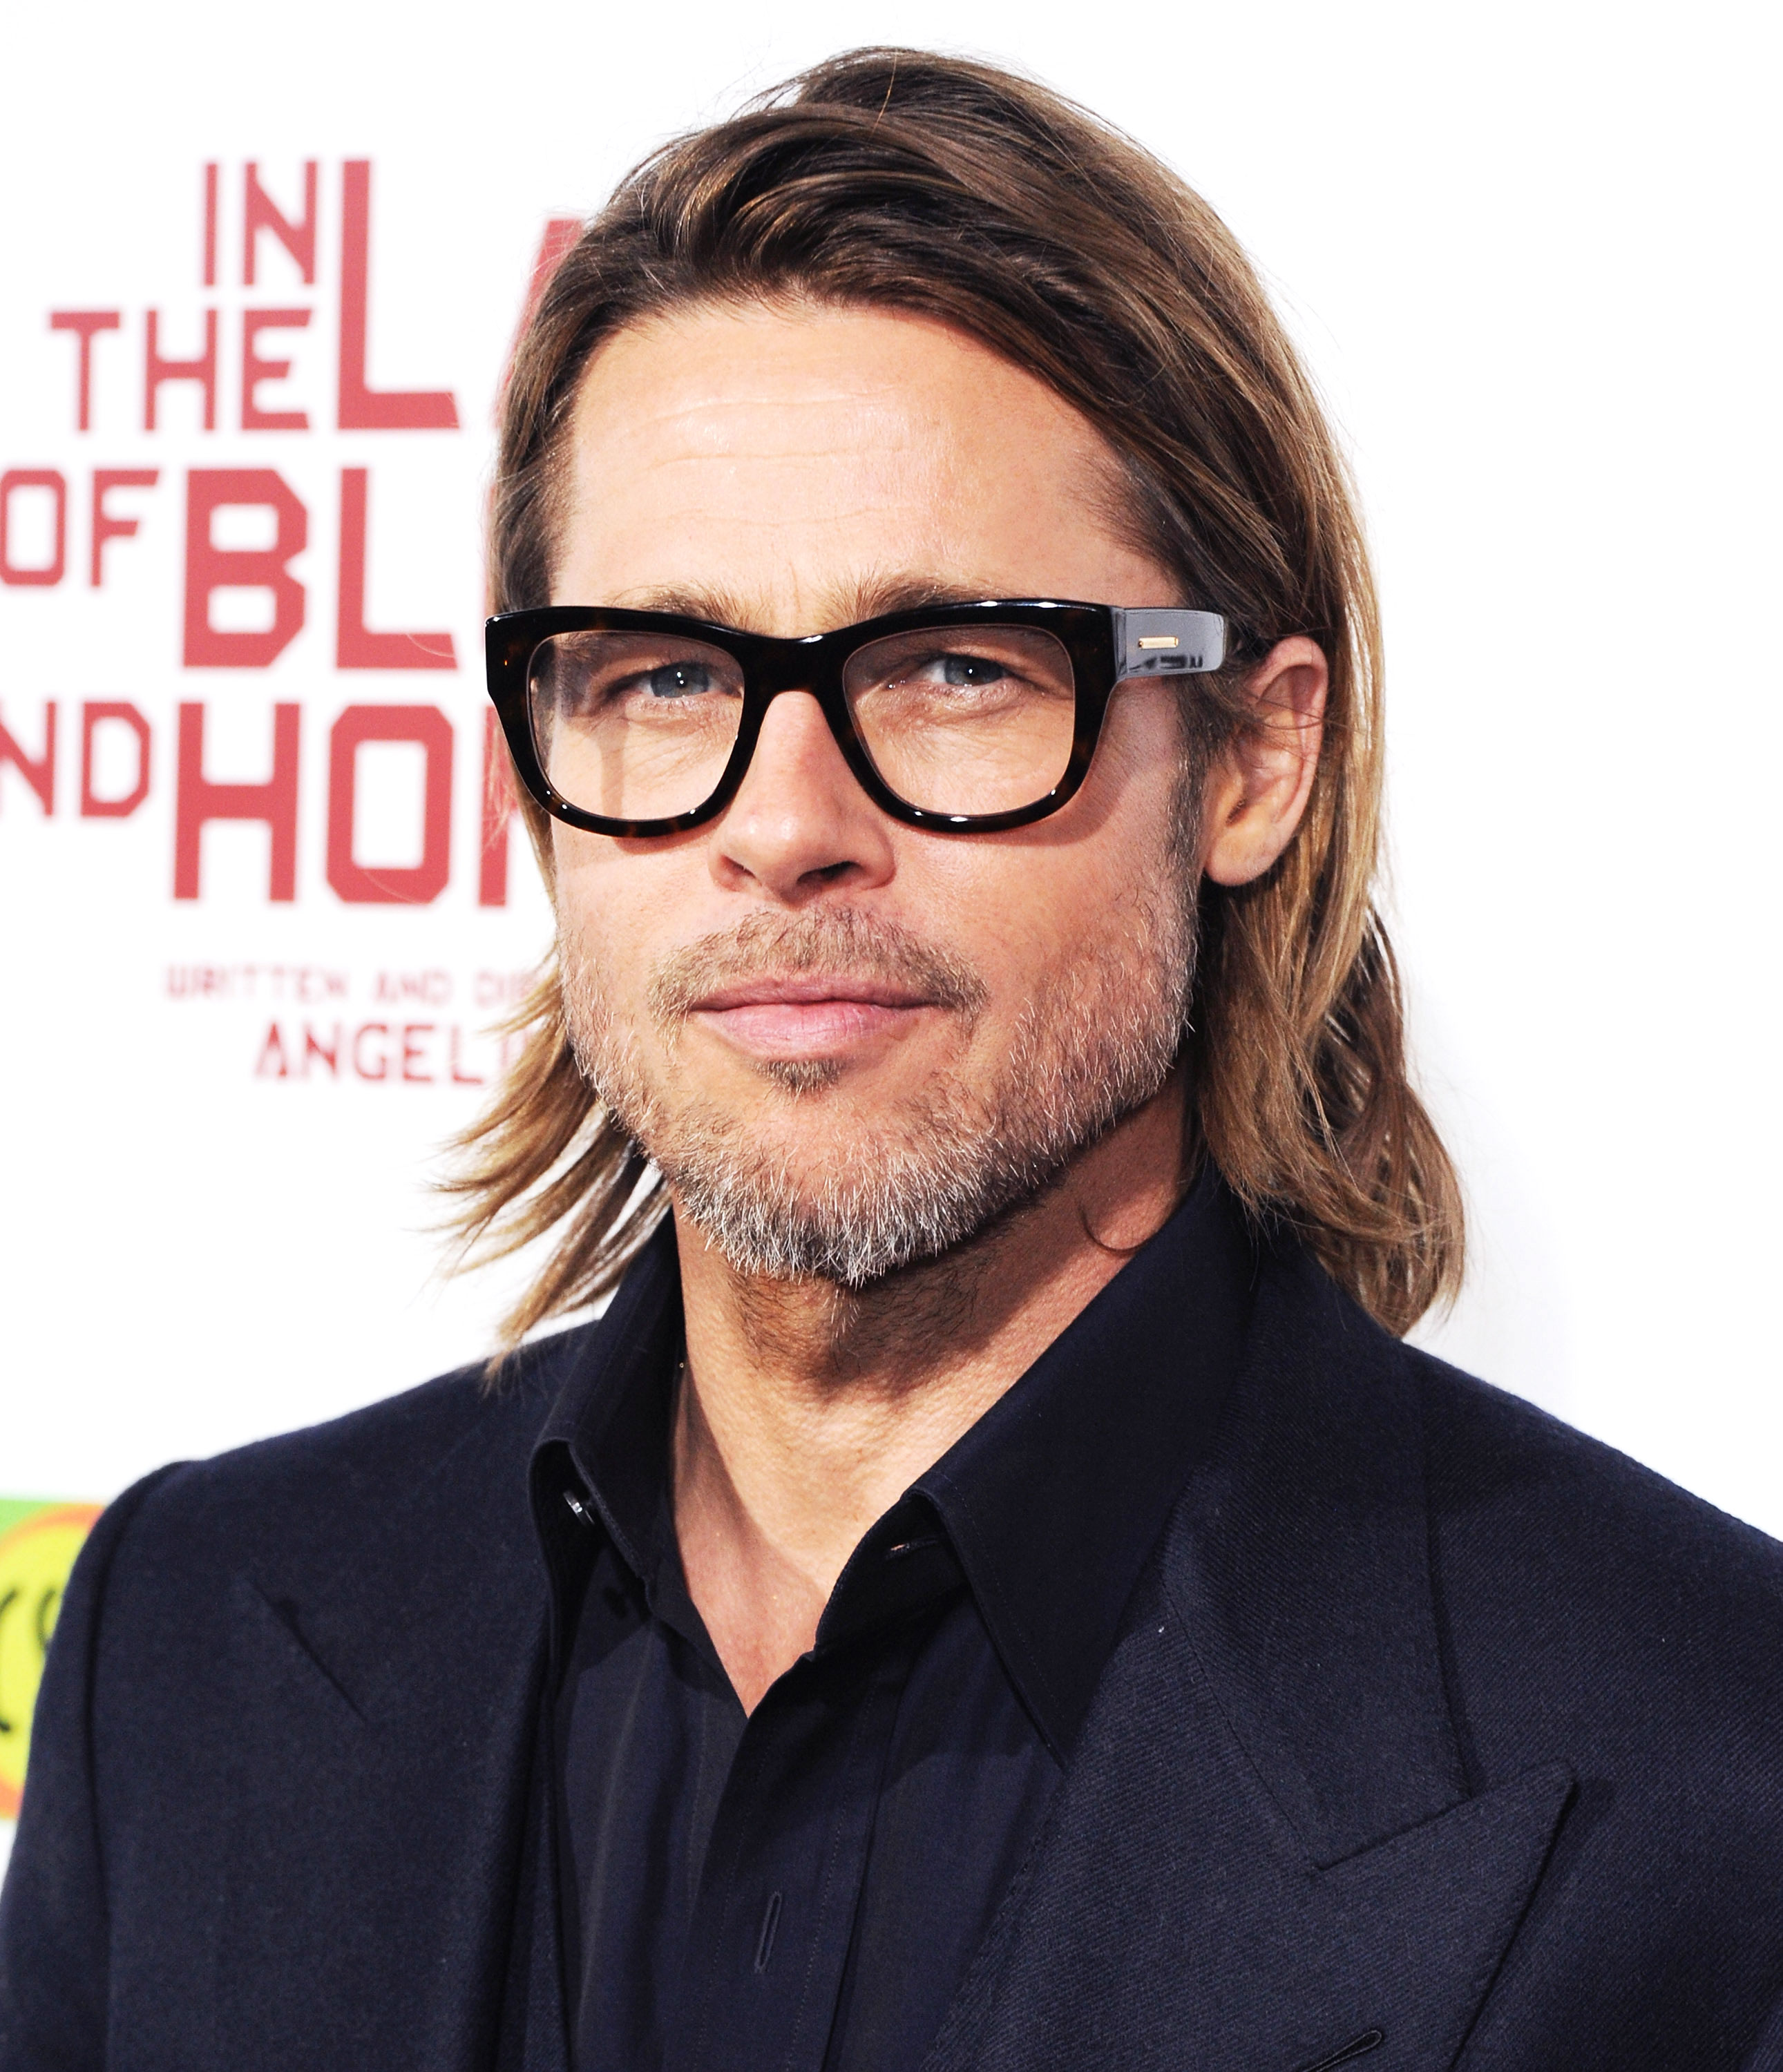 brad-pitt-long hair The Land Of Blood And Honey glasses - Once again embracing a more relaxed vibe, Pitt added a grey-flecked beard to his shoulder-grazing mane at the L.A. premiere of In the Land of Blood and Honey .